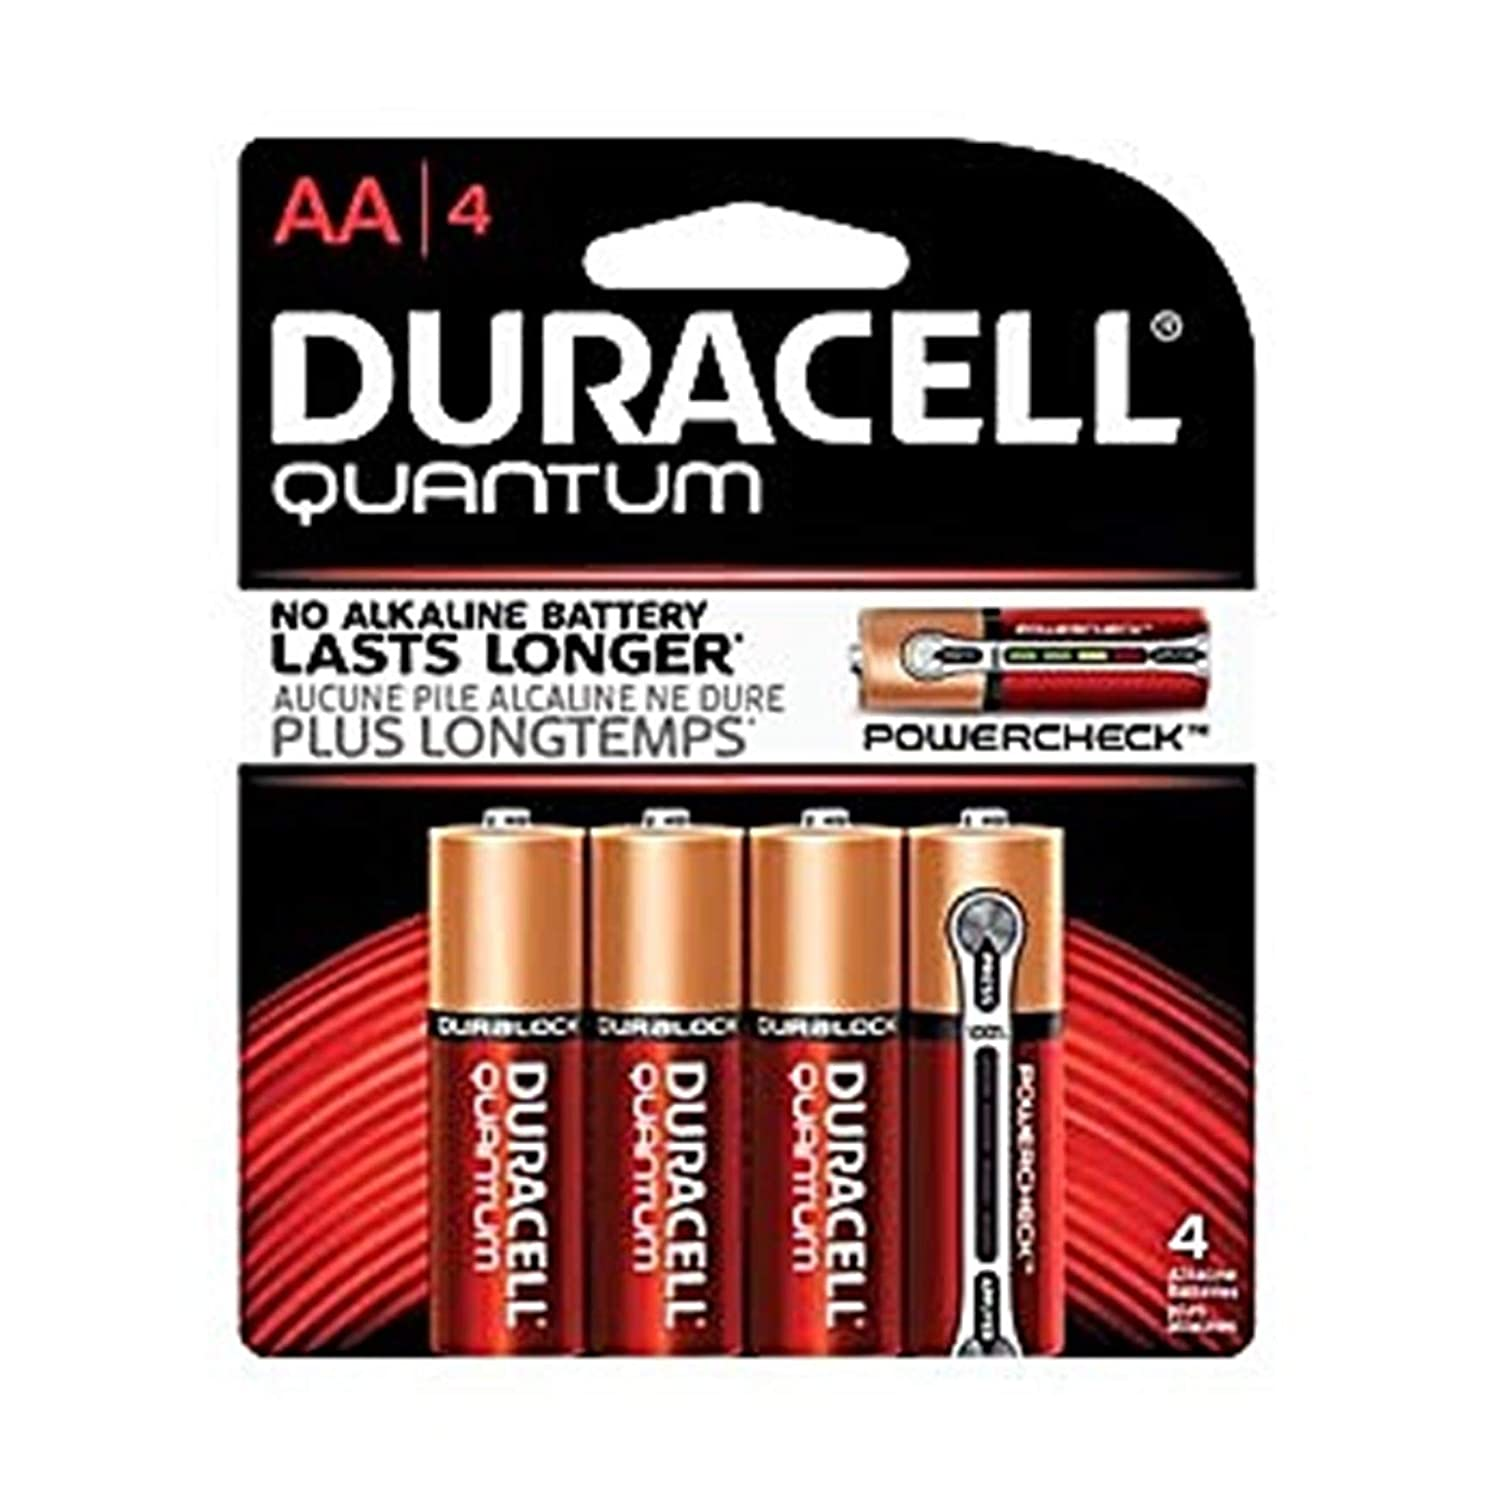 Image of Duracell PGD QU2400B4Z10 Quantum Battery, Alkaline, AAA Size (Pack of 216) AAA